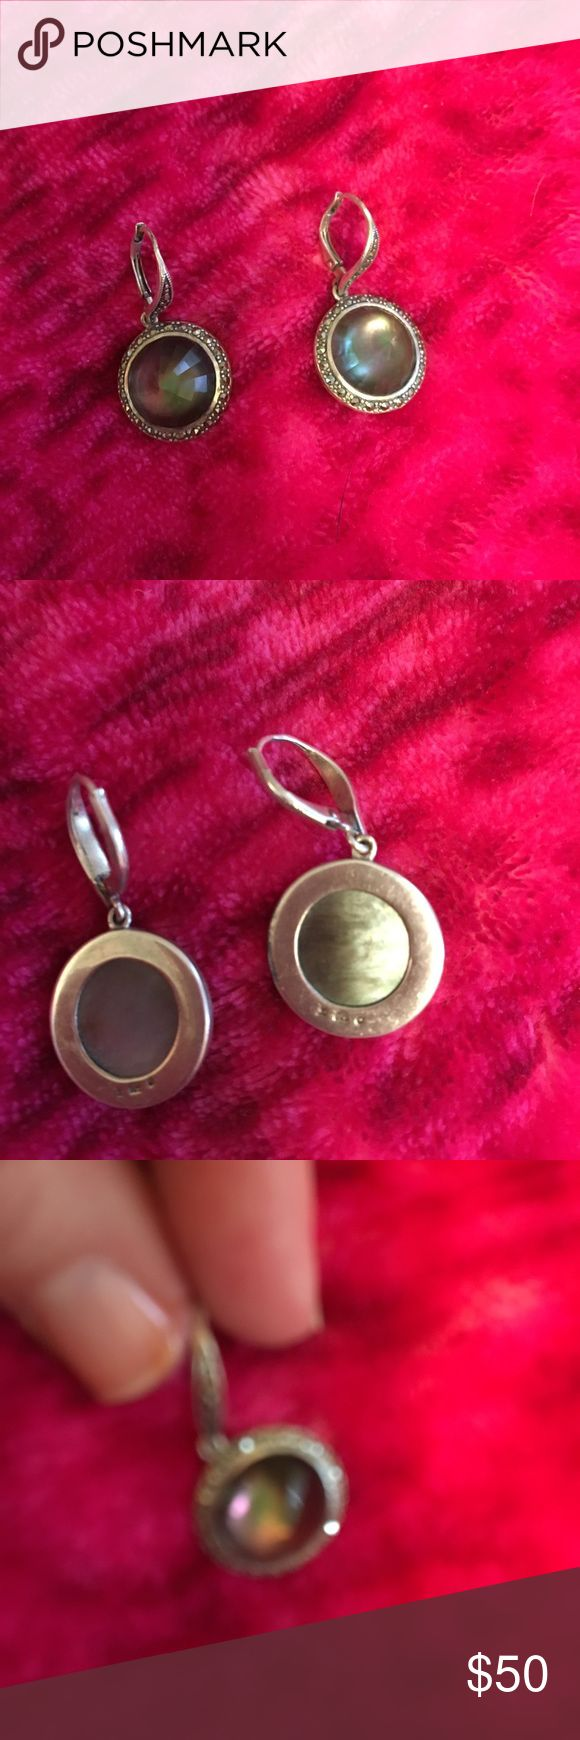 Judith Jack earrings Authentic sterling silver earrings with round mother of pearl pendant encircled in marcasite stones. EUC Judith Jack Jewelry Earrings